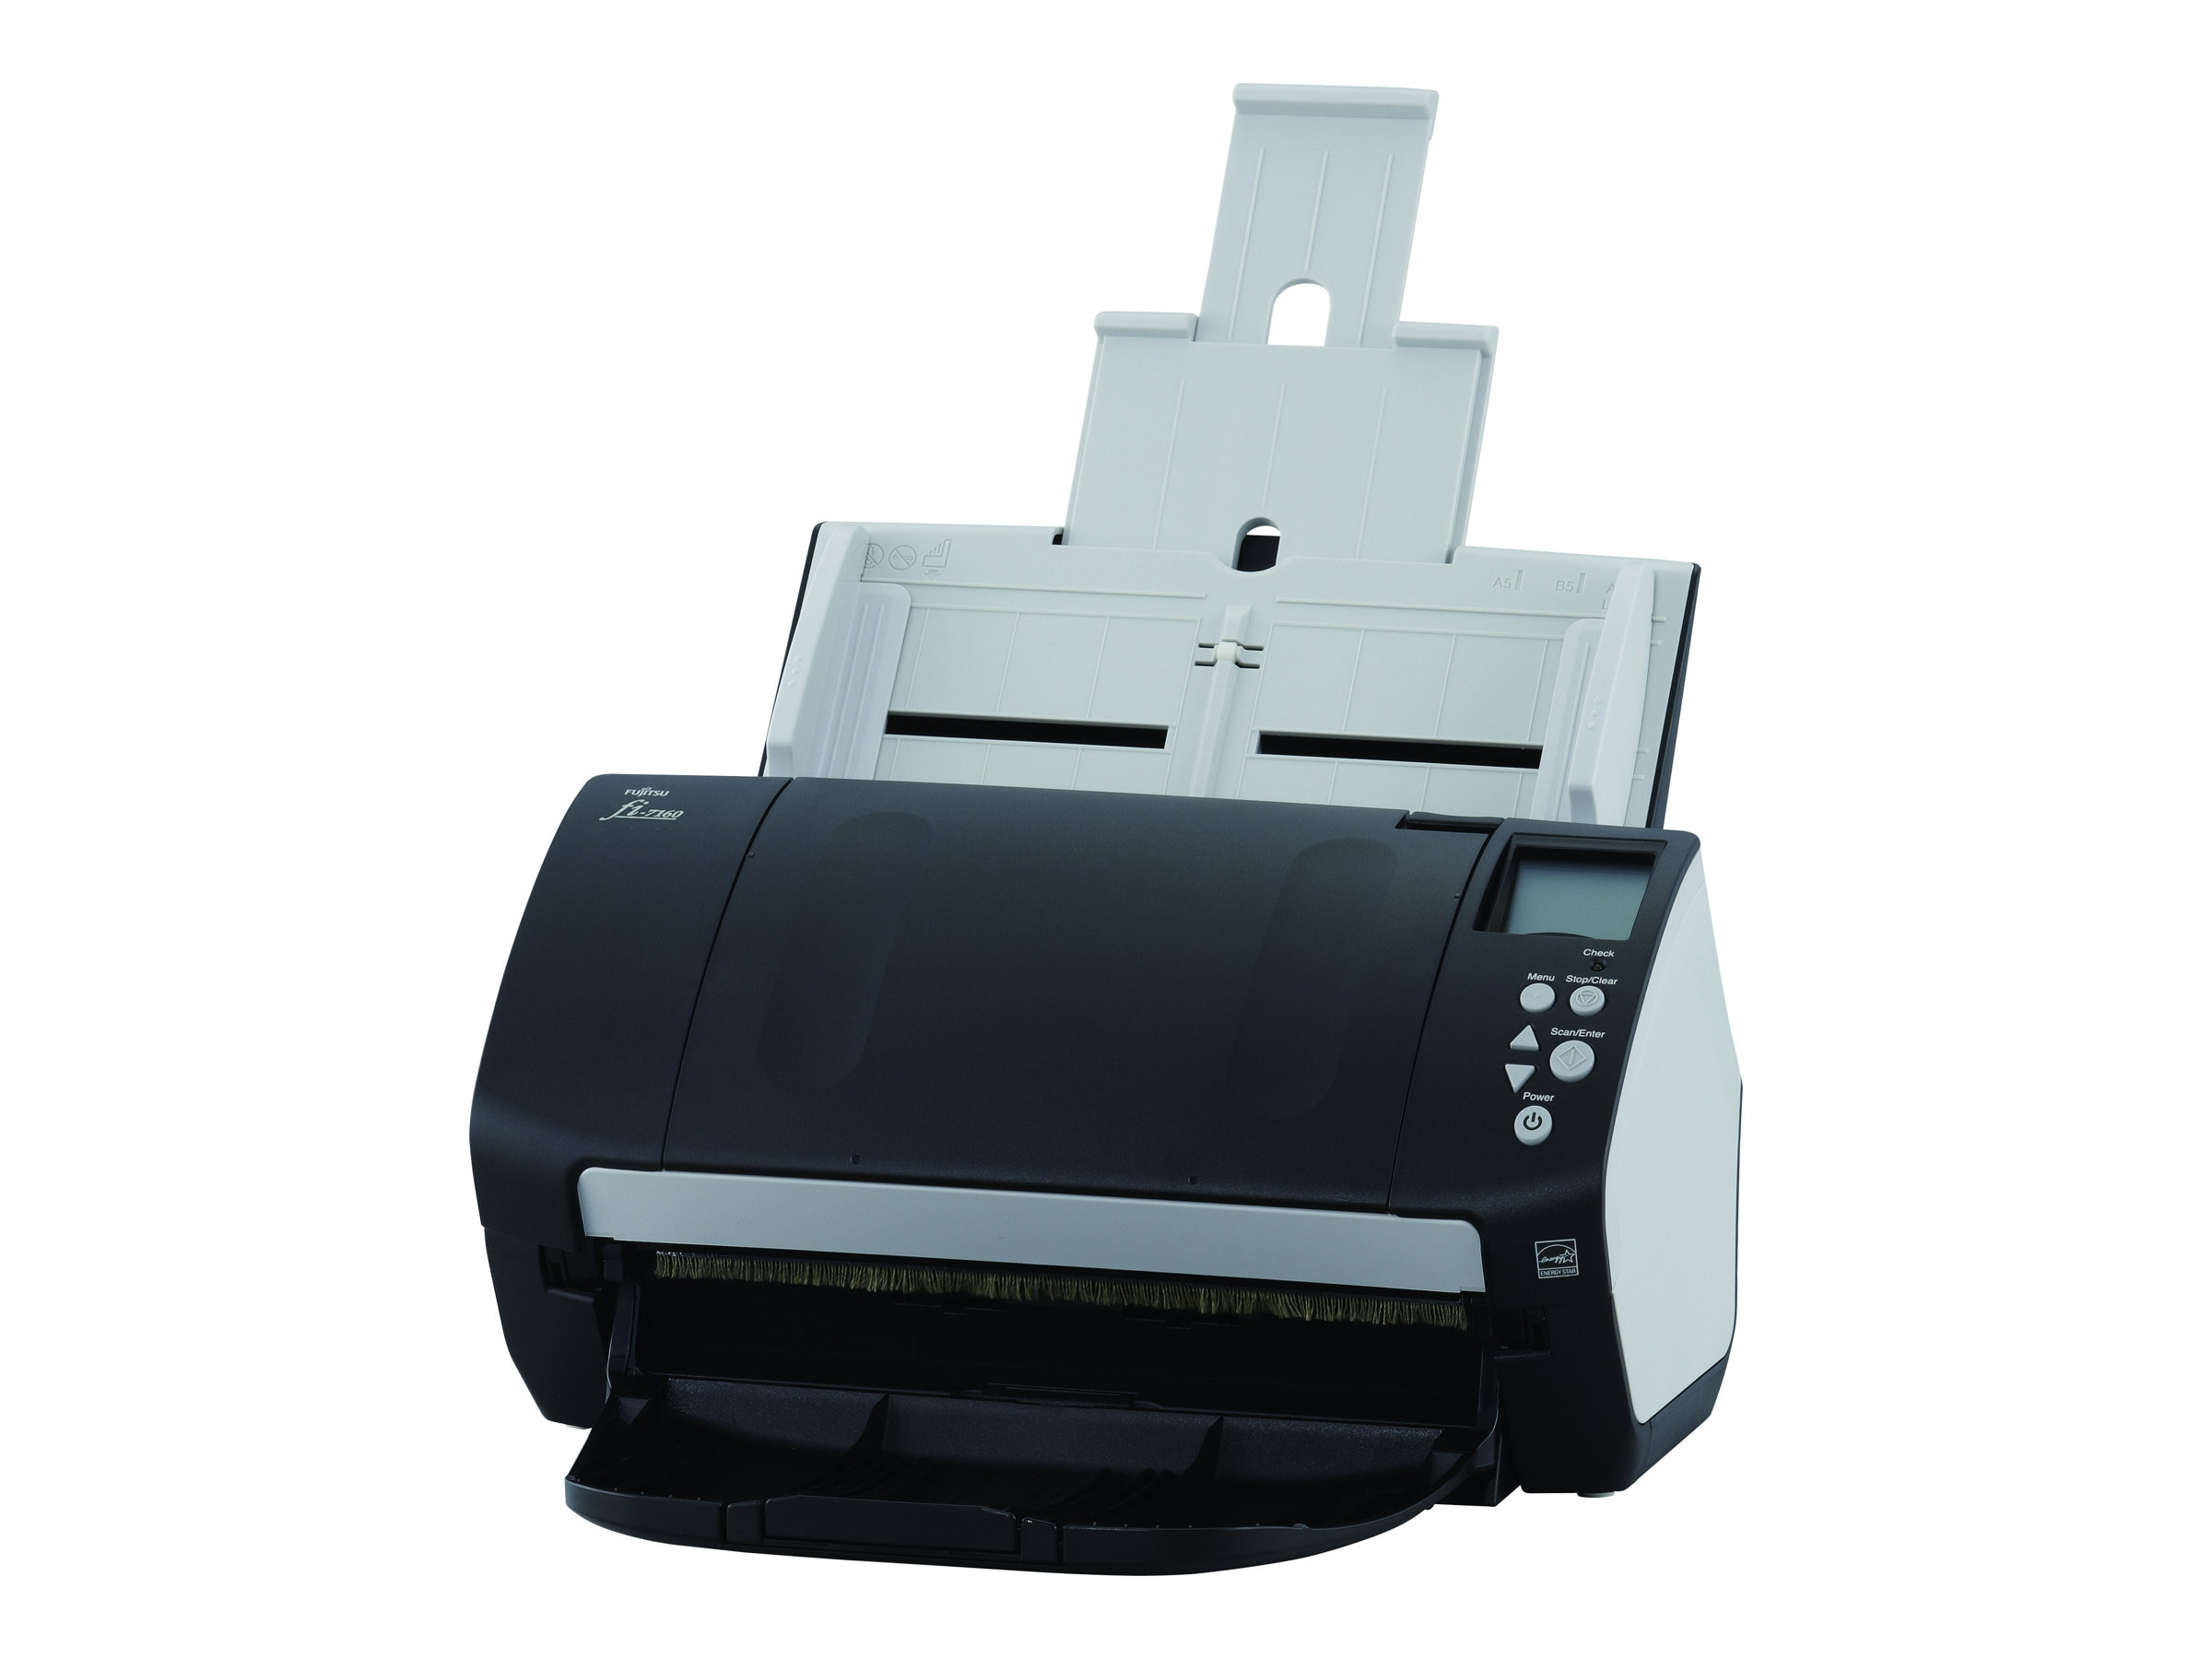 Fujitsu FI-7160 Deluxe PS Capture Pro Color Duplex 60ppm 120ipm PSIP USB3.0, CG01000-286401, 22800181, Scanners